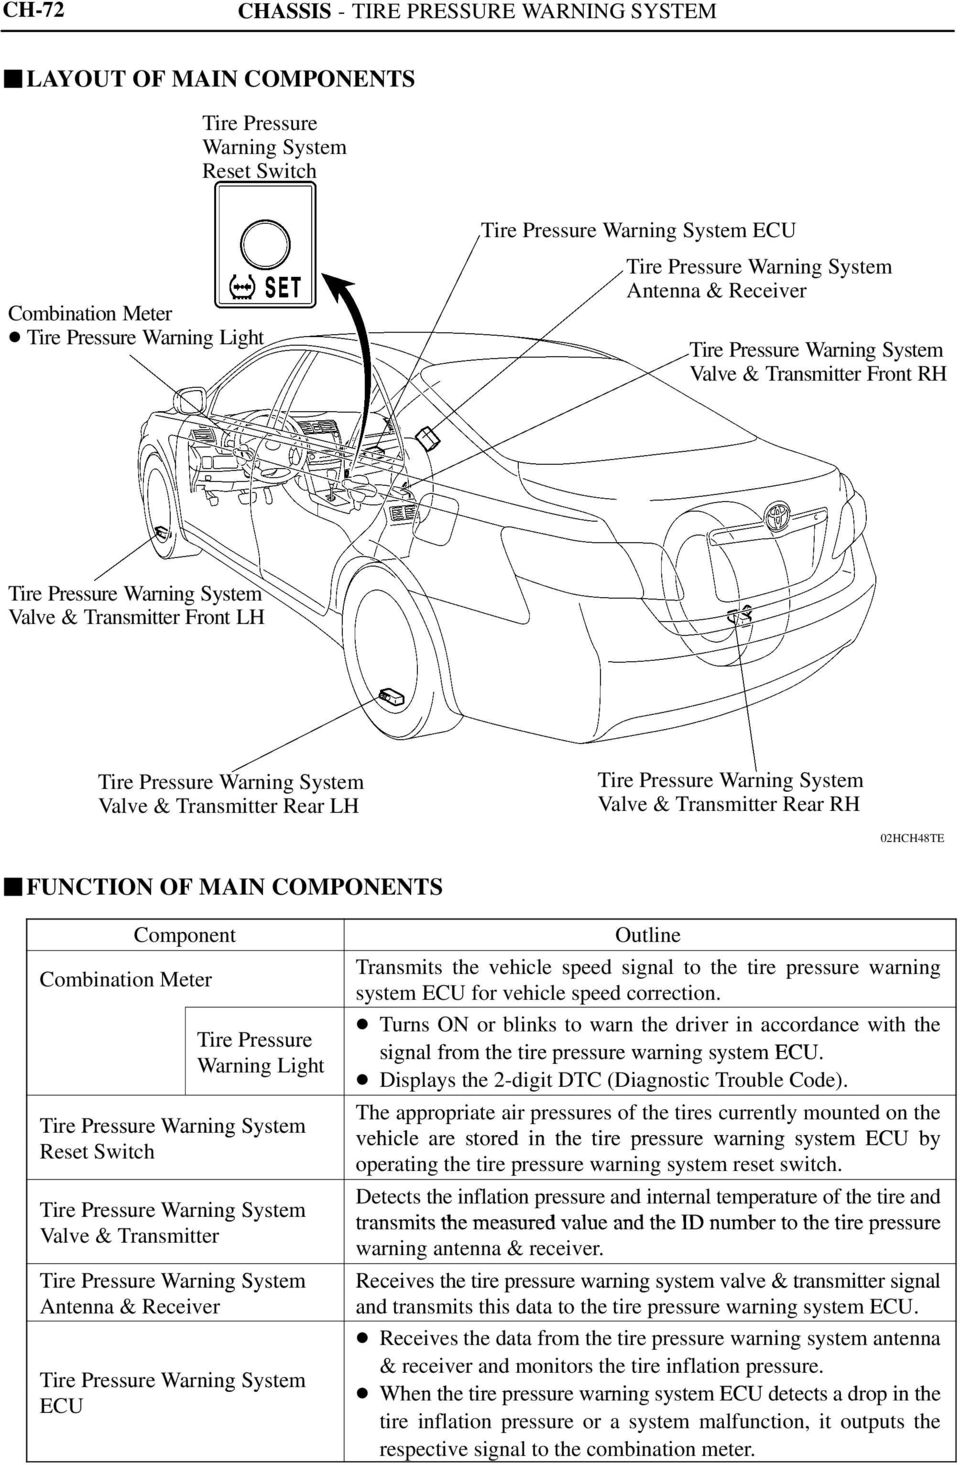 Toyota RAV4 Service Manual: Position initialization incomplete